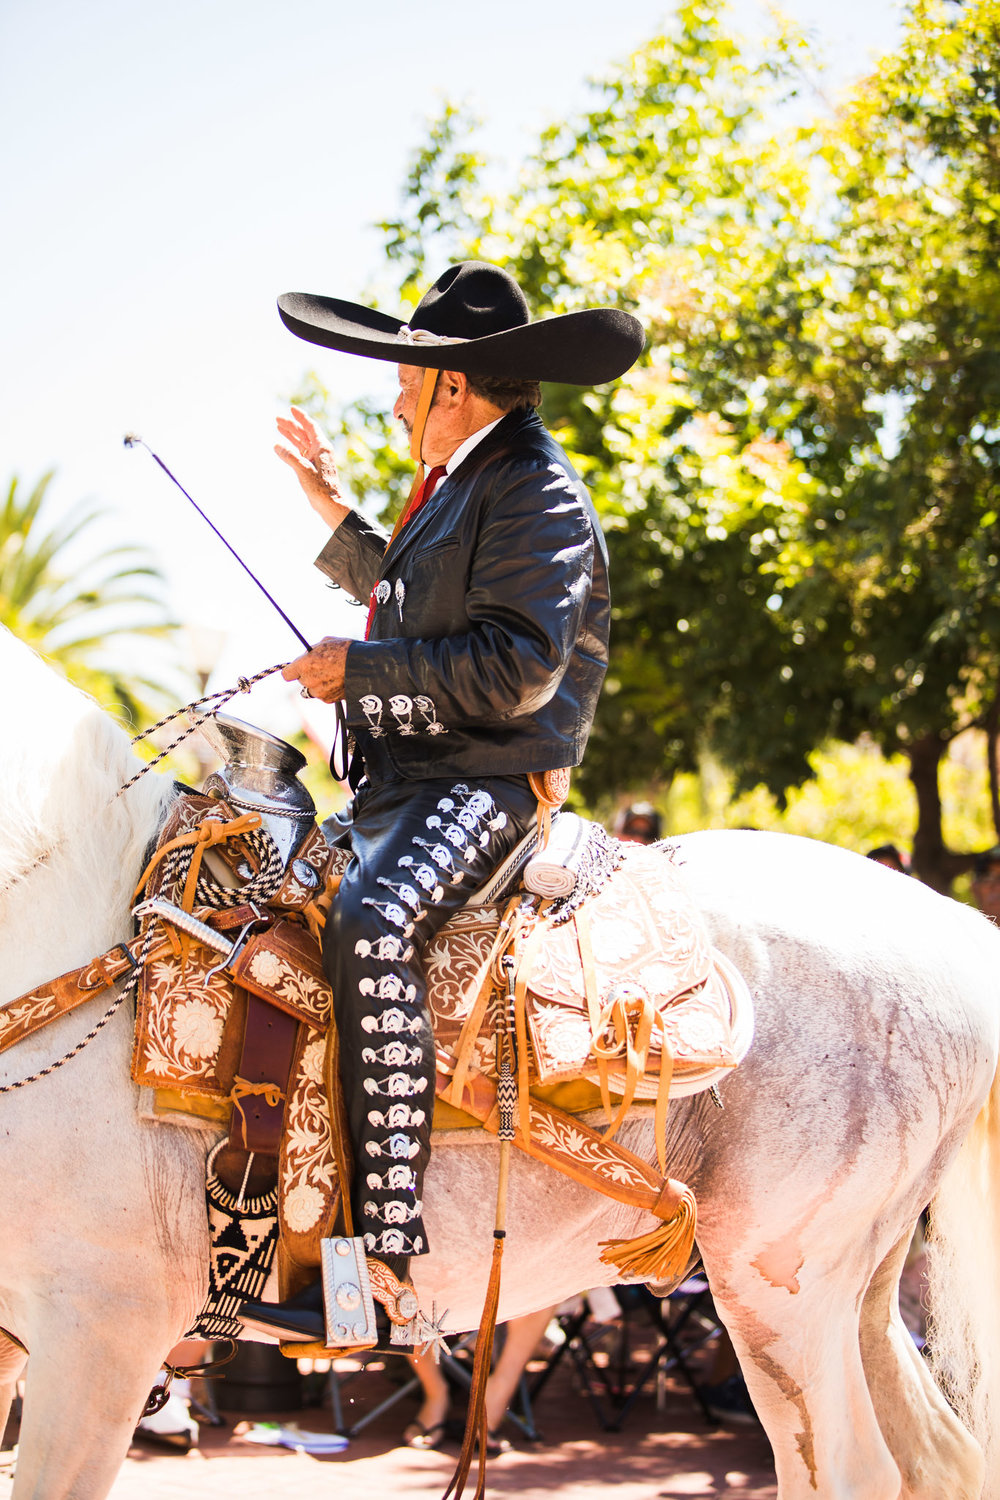 Archer_Inspired_Photography_Morgan_Hill_California_4th_of_july_parade-153.jpg